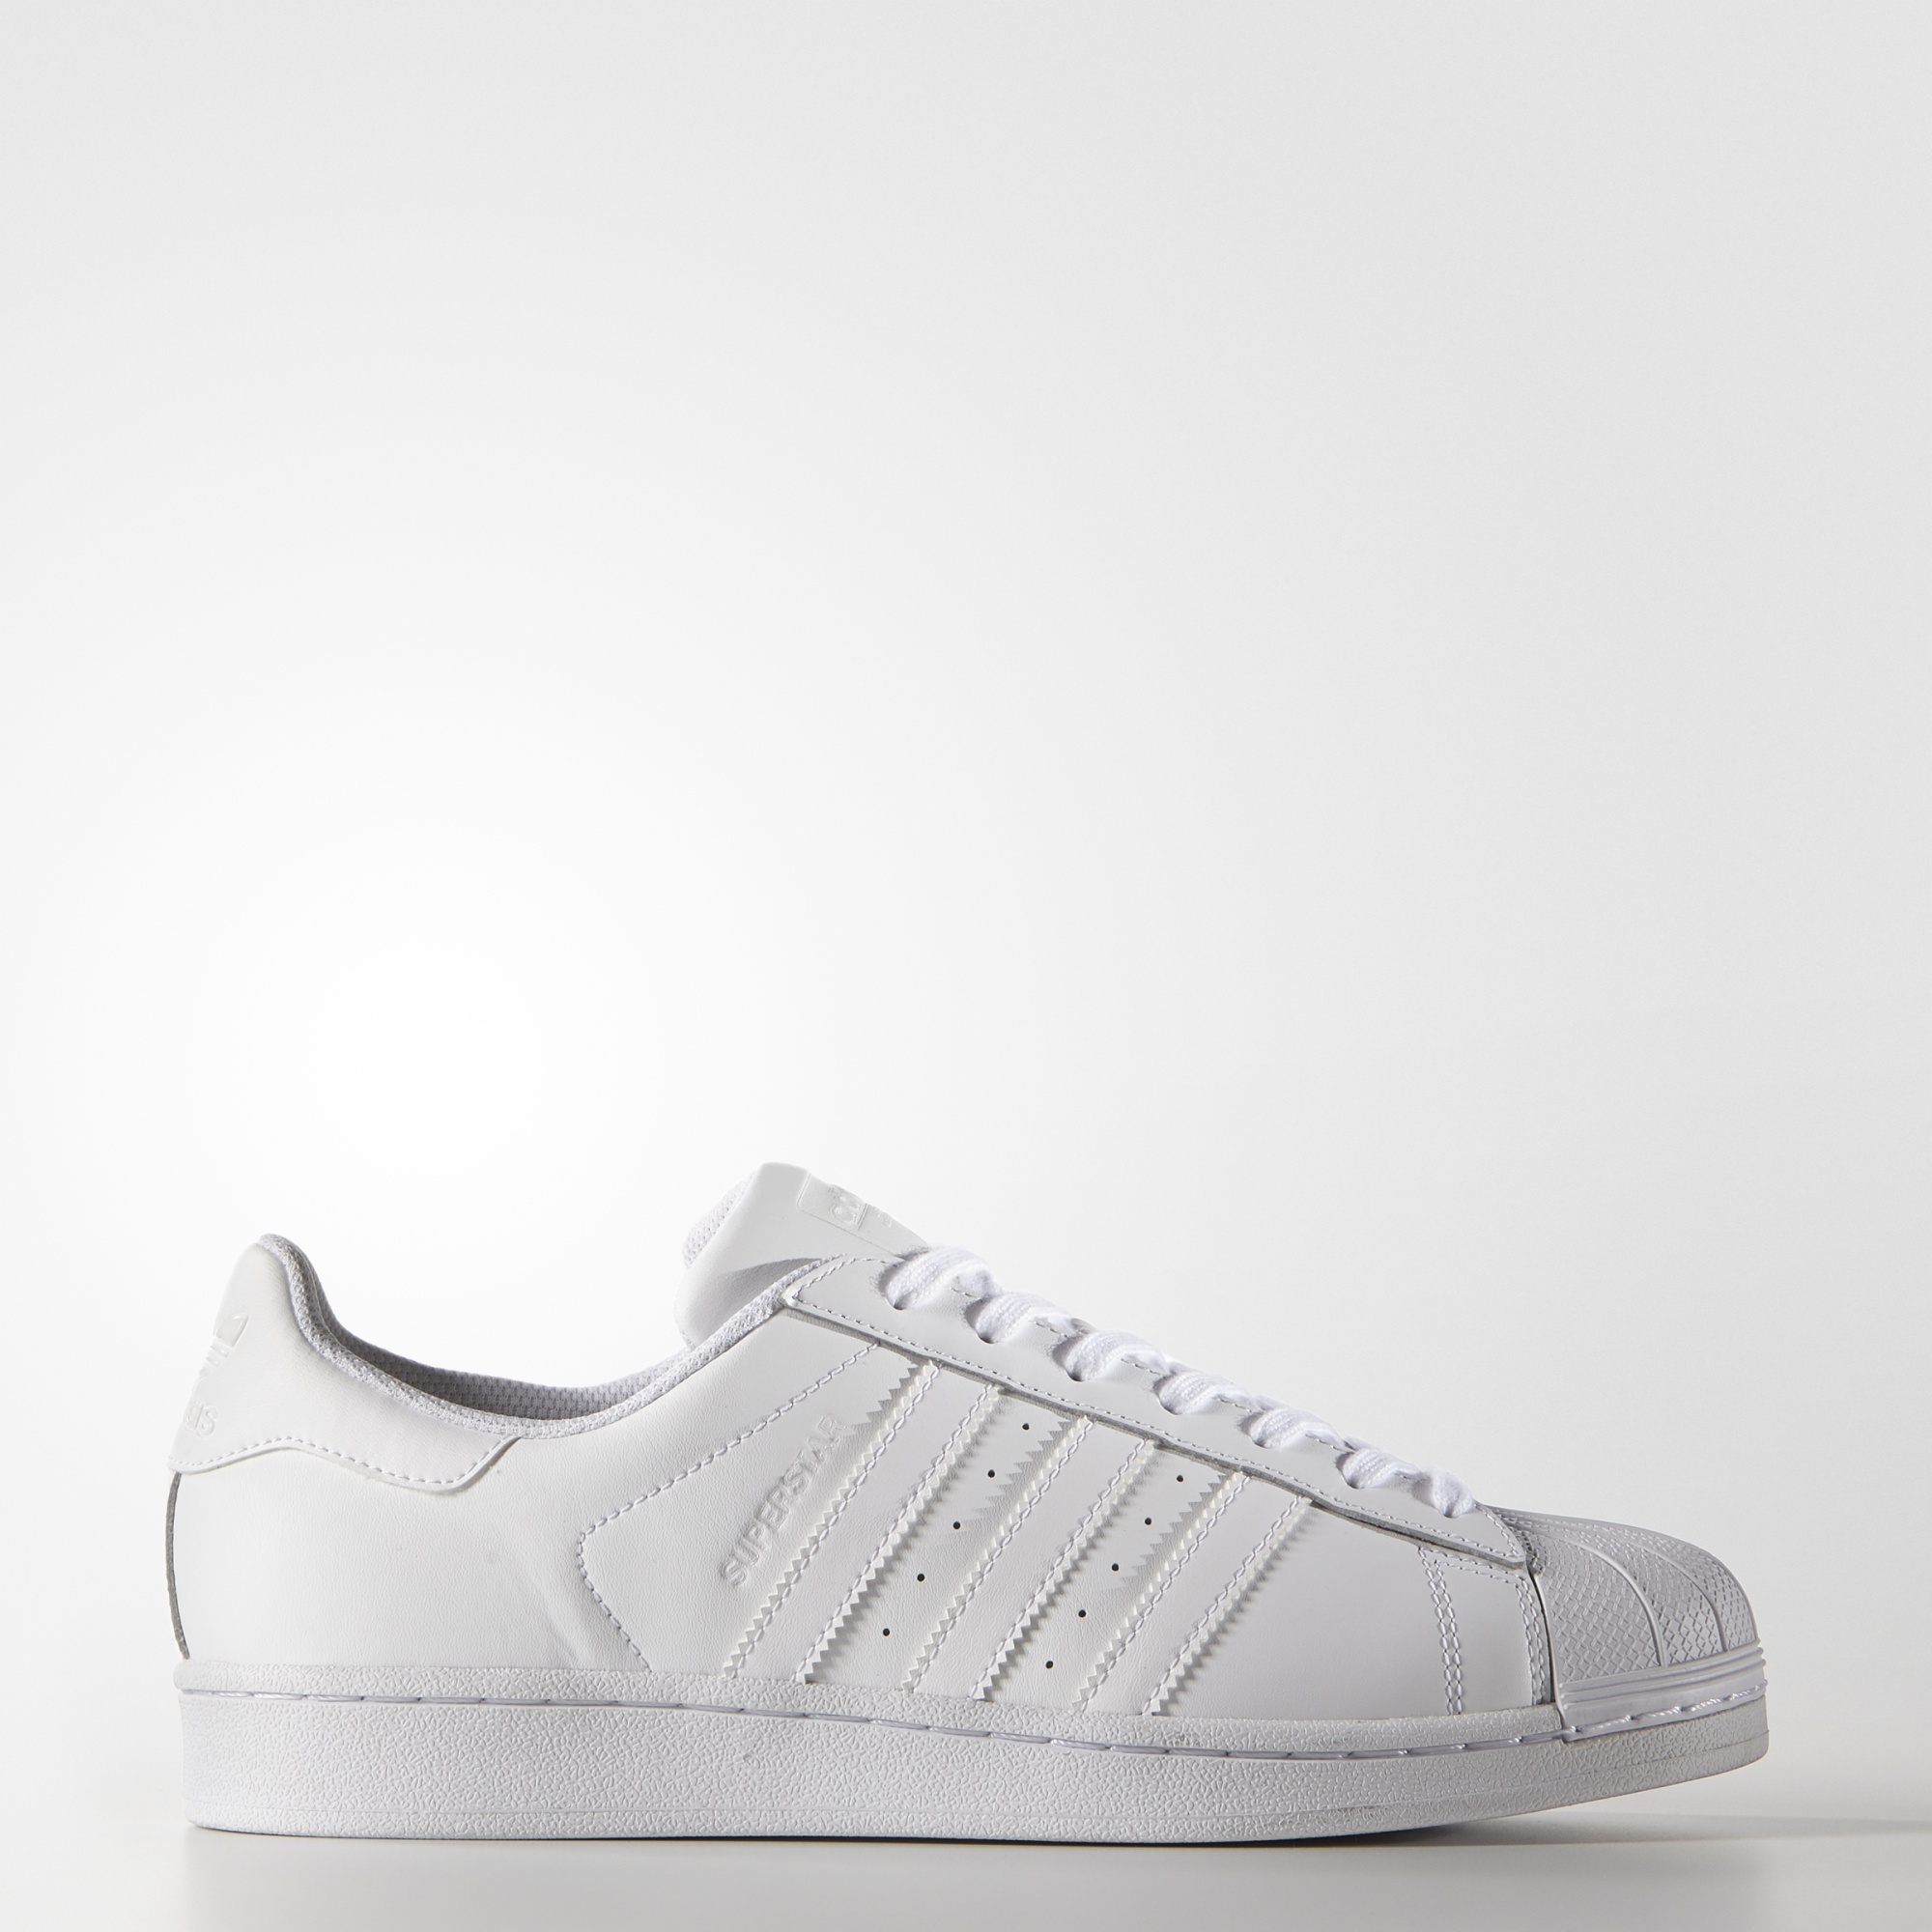 timeless design 0076f 35f90 ... wholesale shoes adidas superstars superstar white shoes adidas ombre  grey white sneakers adidas shoes adidas originals